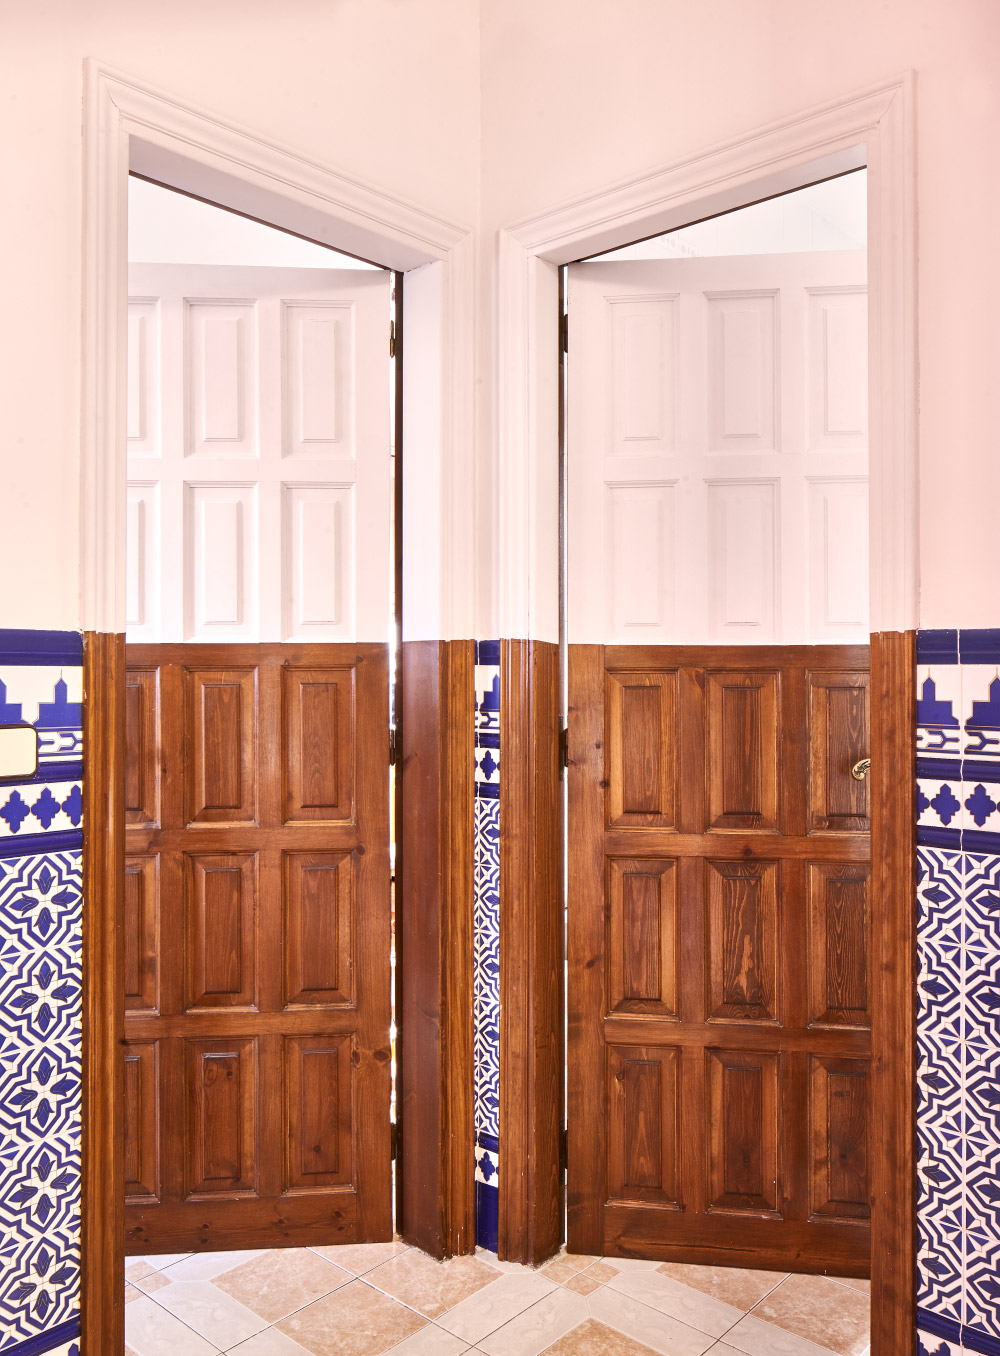 Two side-by-side doors open